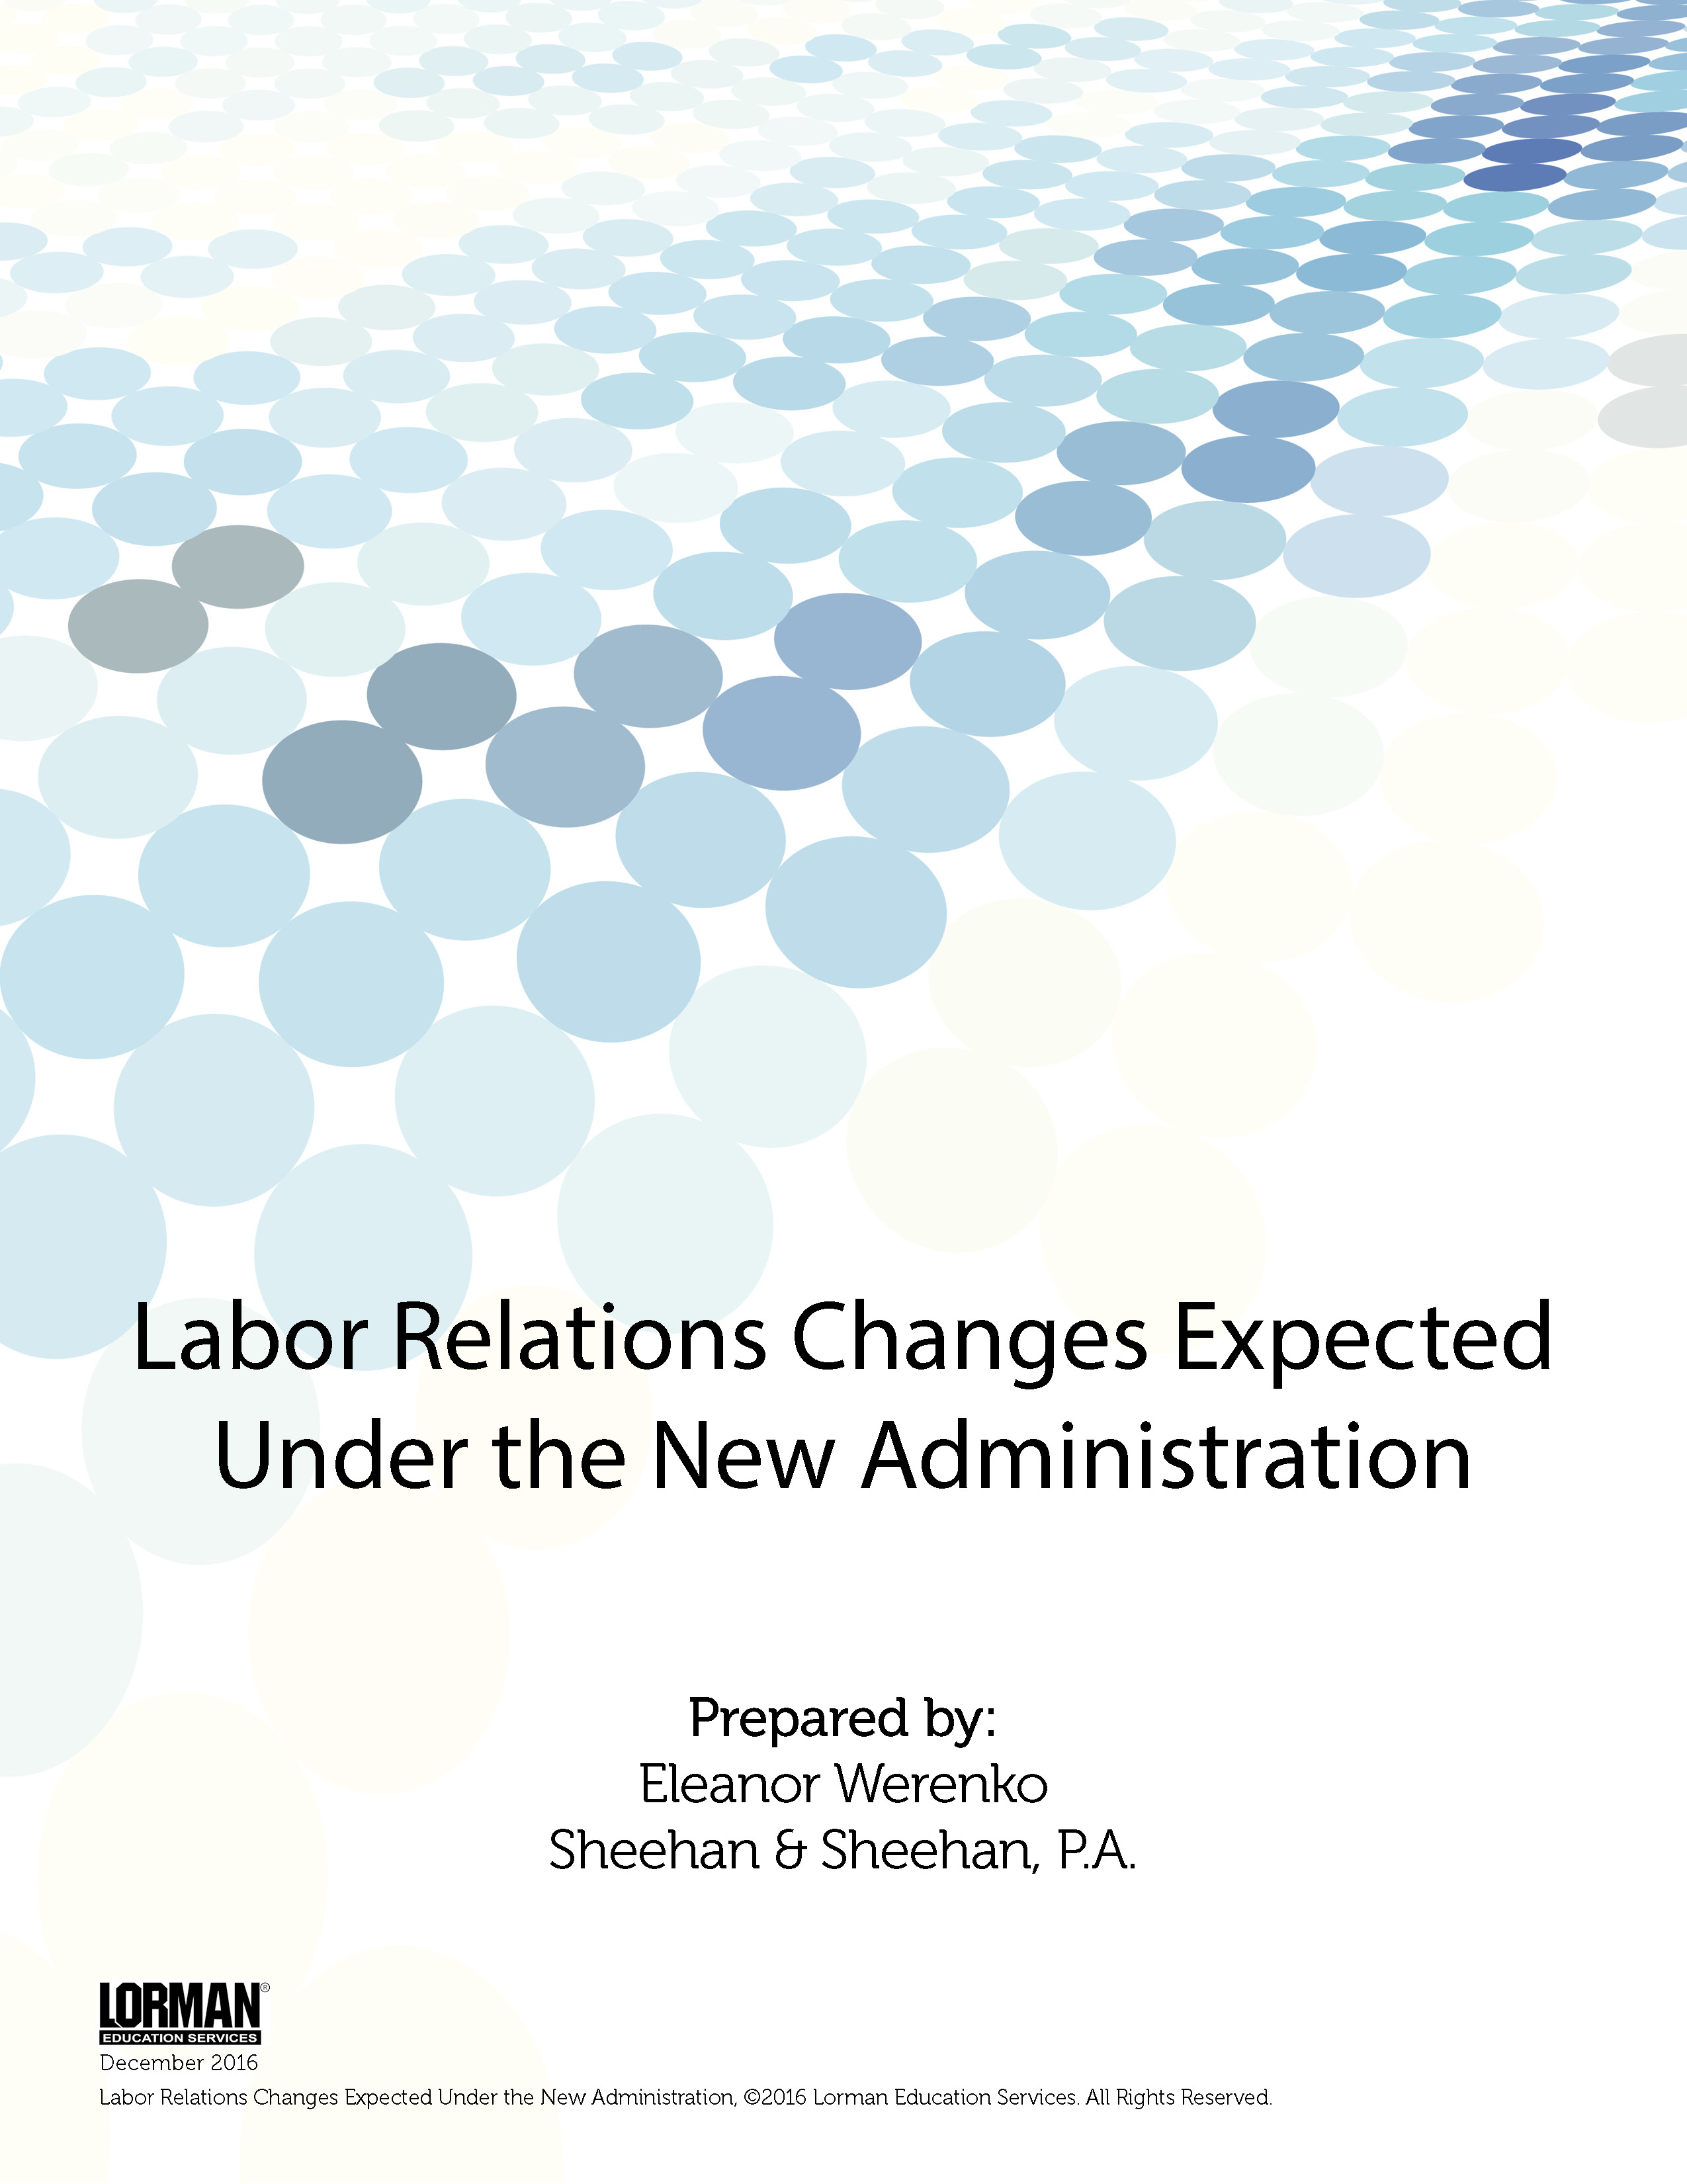 Labor Relations Changes Expected Under the New Administration